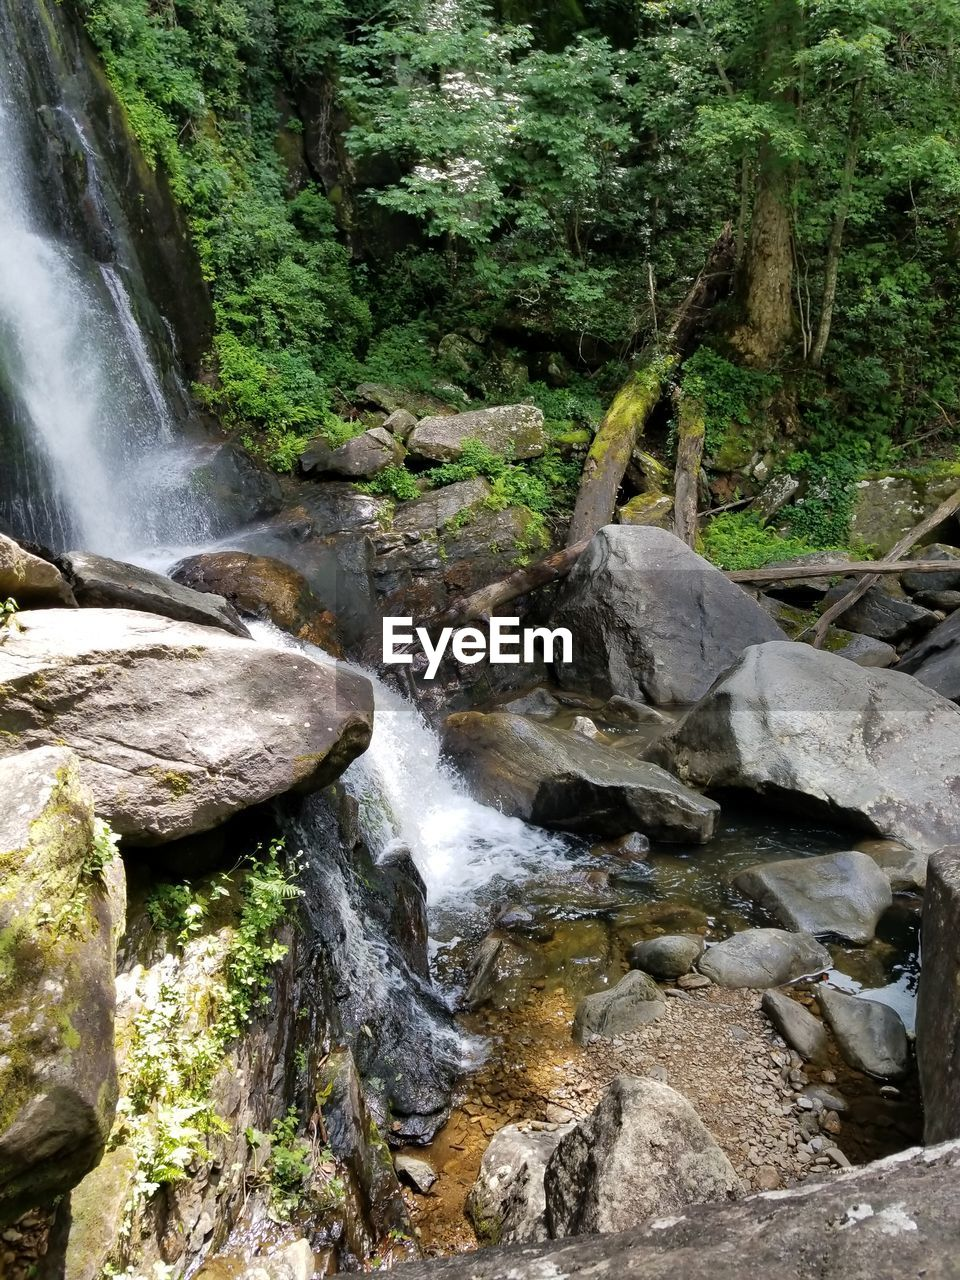 waterfall, flowing water, motion, nature, water, long exposure, forest, beauty in nature, river, rock - object, scenics, no people, tranquil scene, outdoors, blurred motion, tree, rapid, day, tranquility